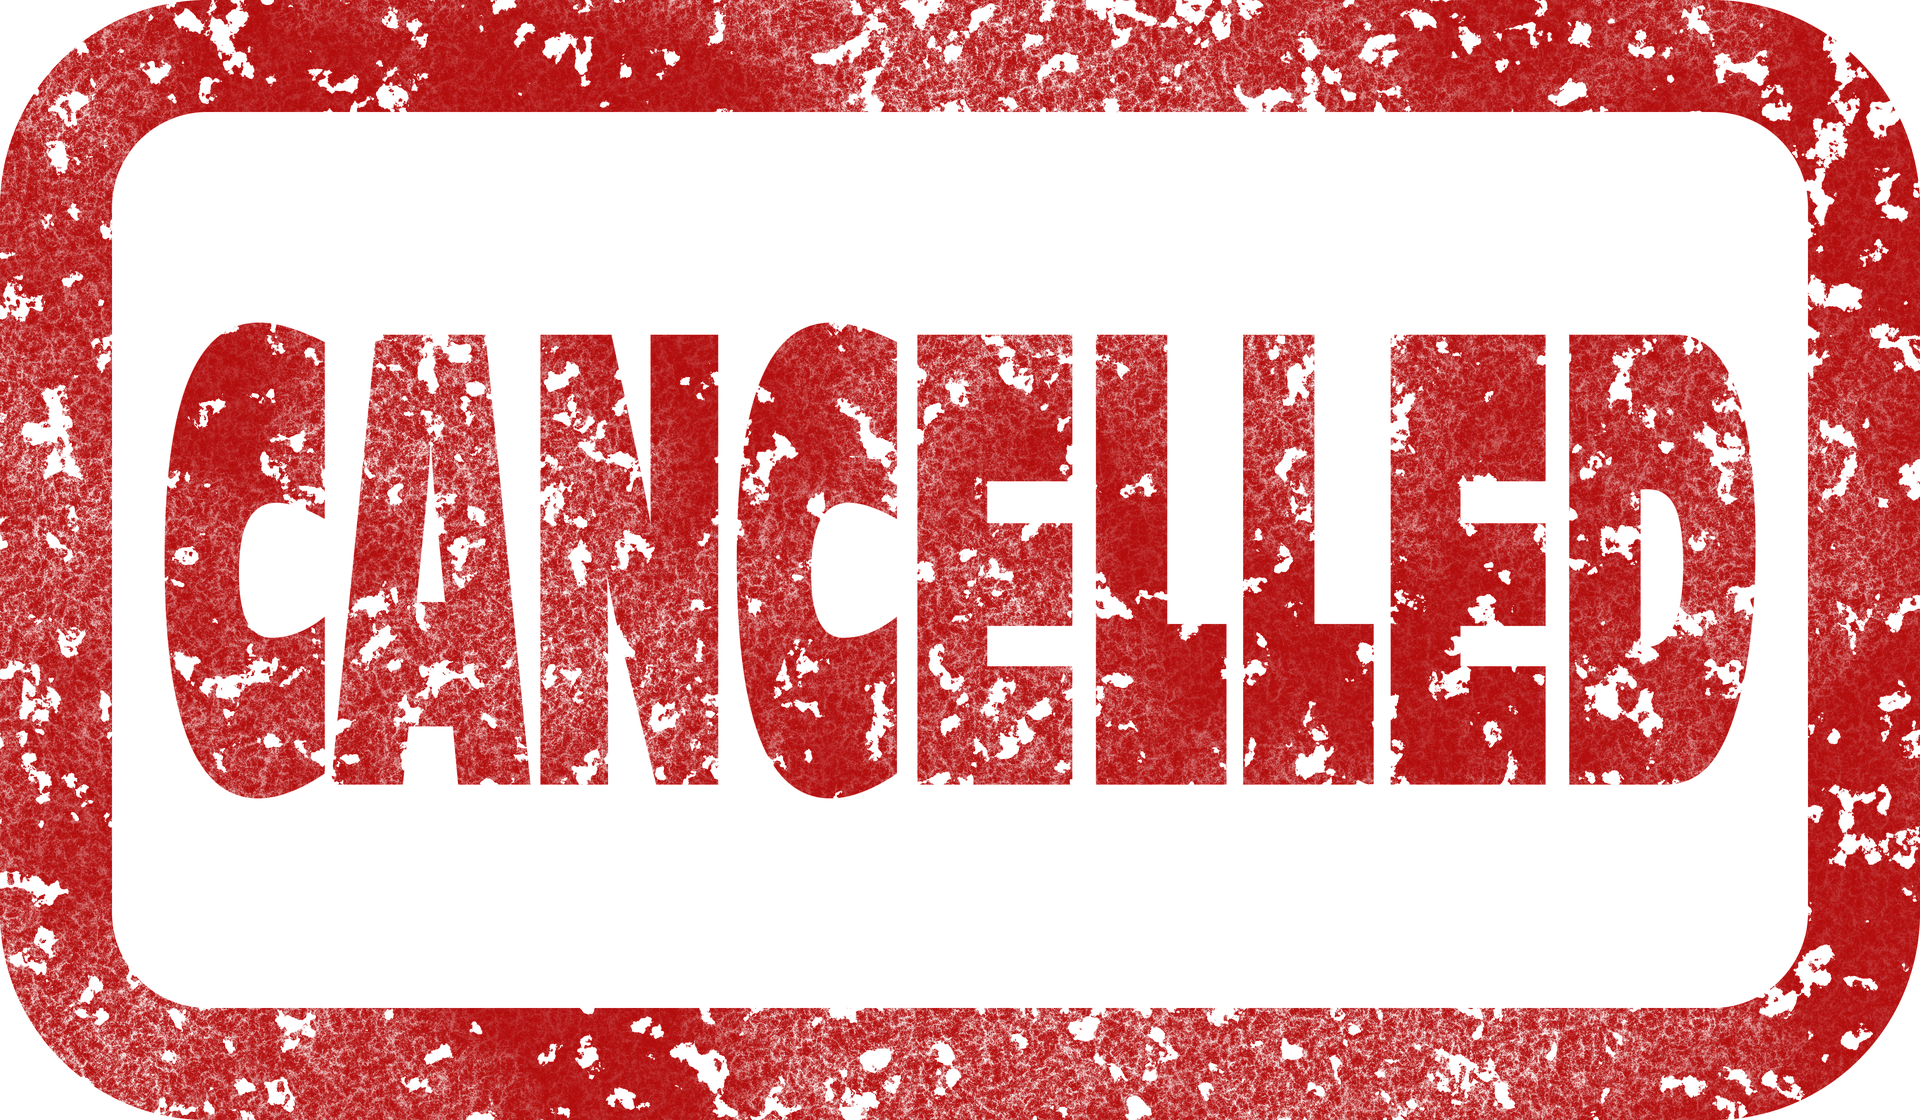 Cancelled sticker in red and white.